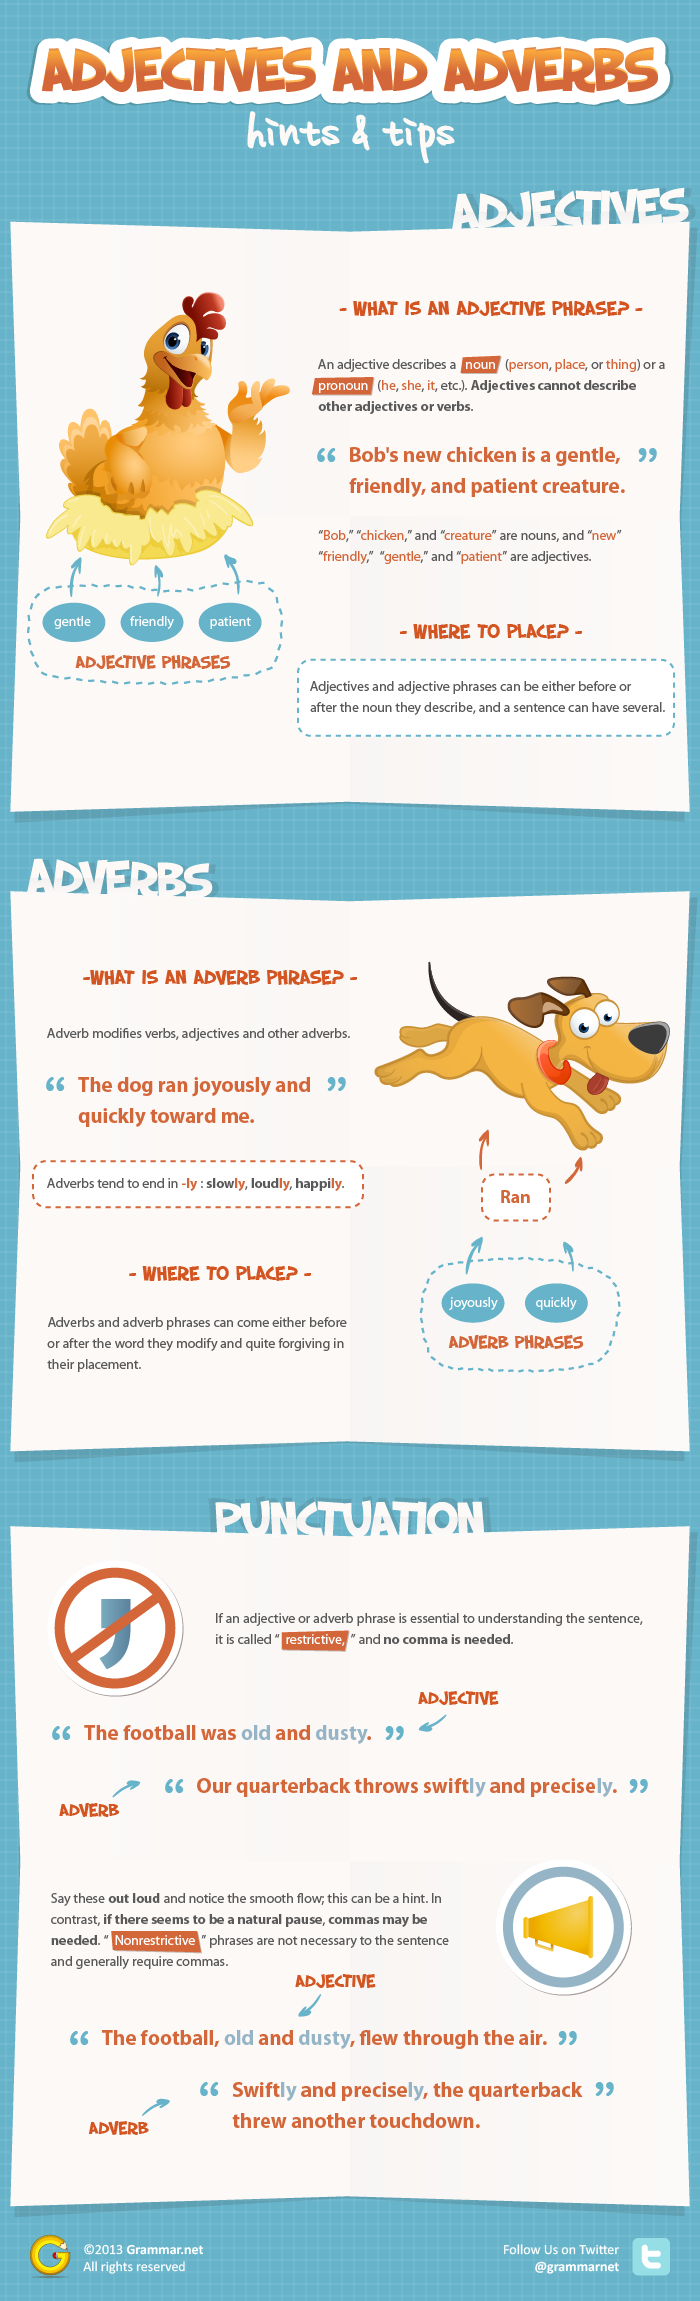 difference of adjective and adverb phrases